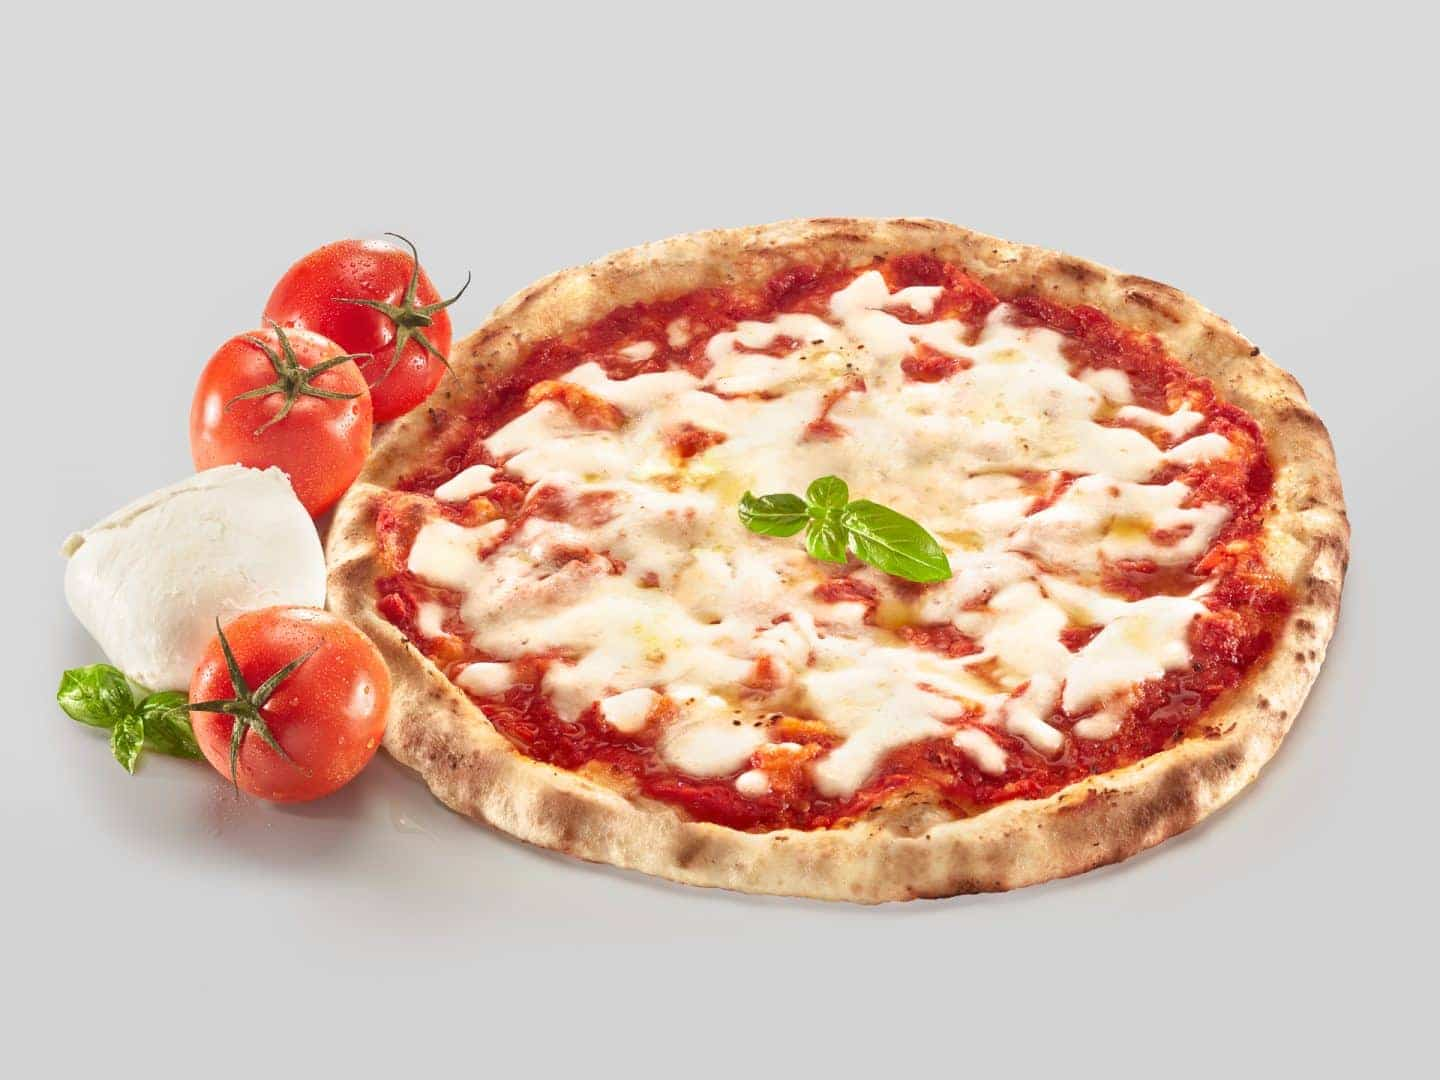 fotografo food still life editoriale pizza margherita surgelata per packaging